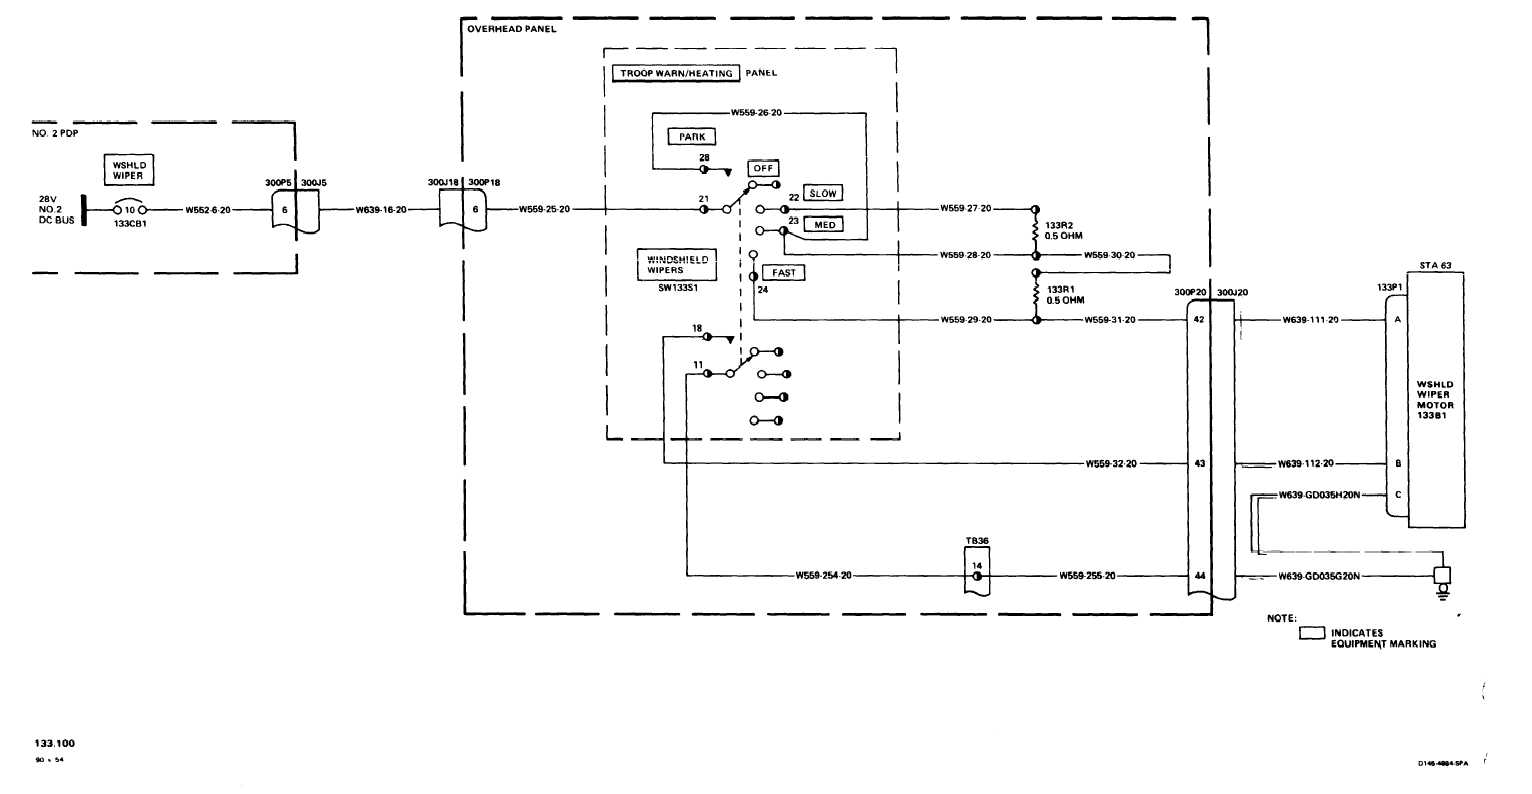 TM 55 1520 240 T 3_590_1 wiper wiring diagram f100 wiper motor wiring diagram \u2022 wiring 1999 ford explorer rear wiper wiring diagram at crackthecode.co